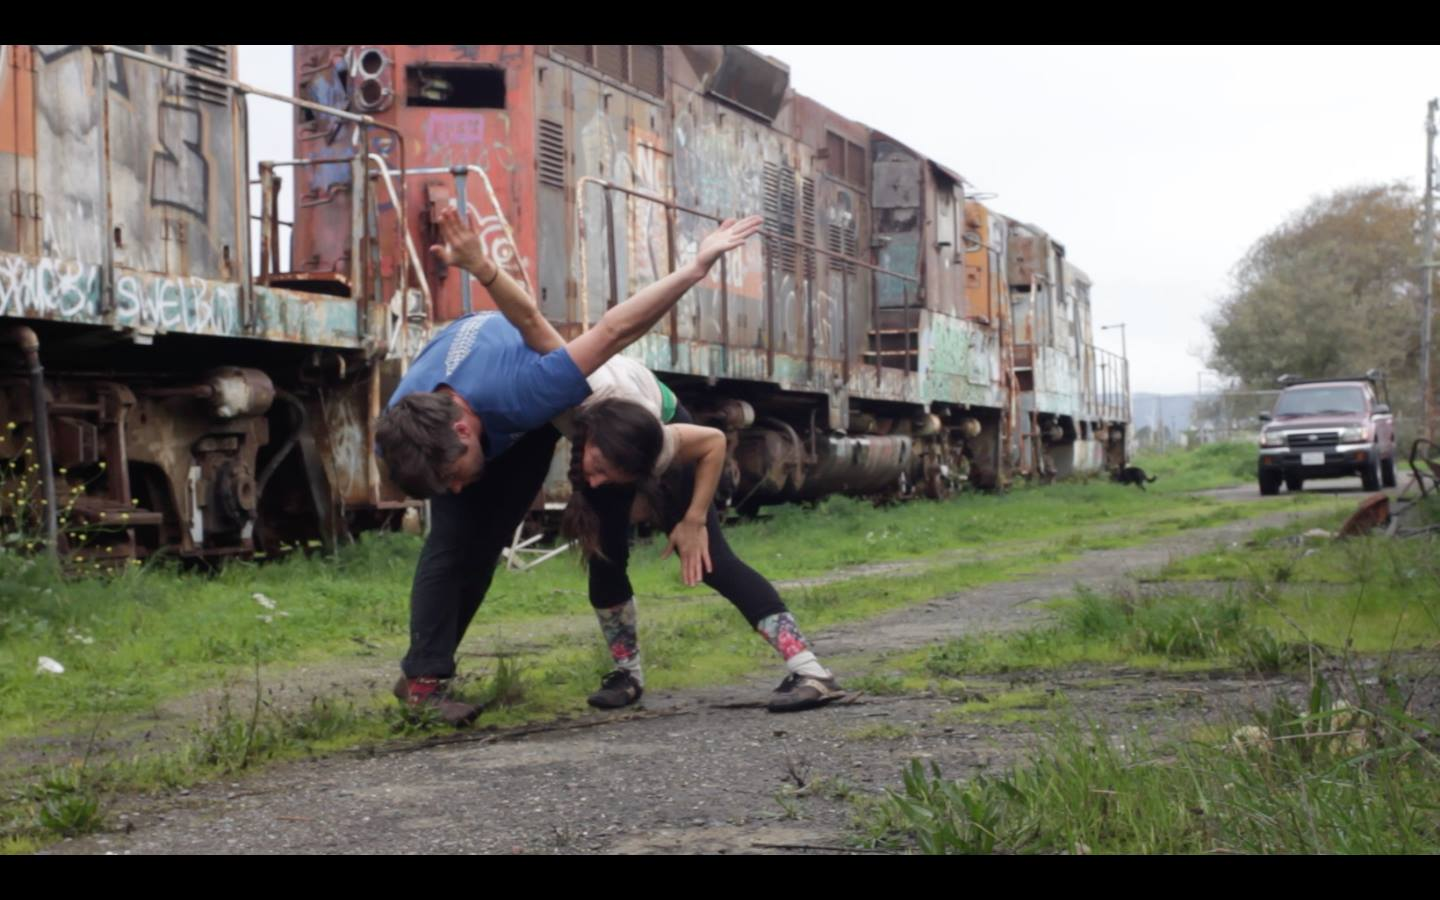 An all levels contact improvisation workshop with Kevin Dockery At the Finnish Hall in Berkeley, CA on August 25 and 26th from noon until 6pm both days